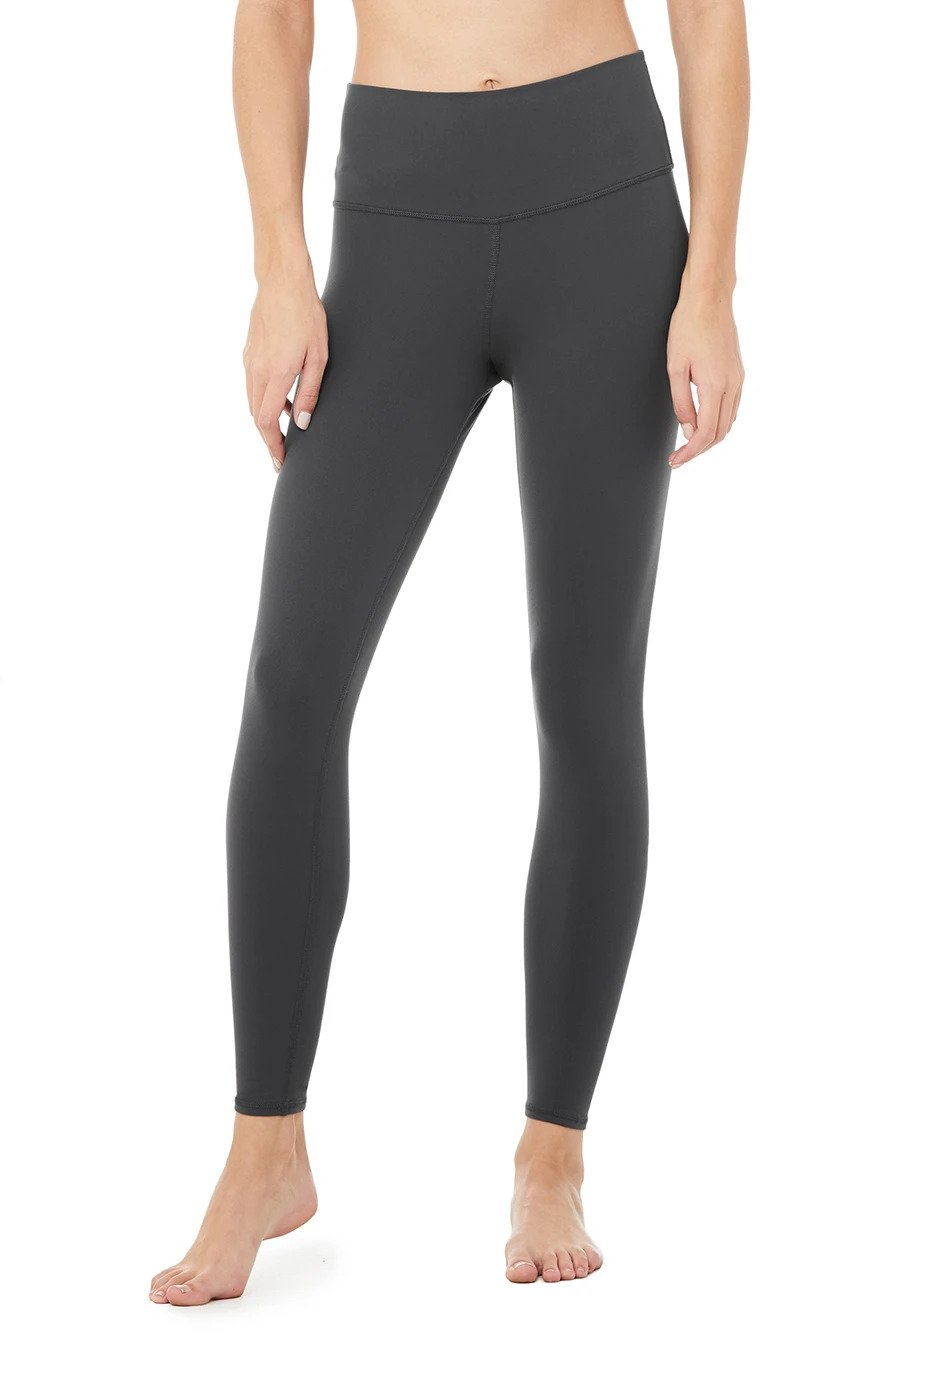 Alo Yoga XXS 7/8 High-Waist Airbrush Legging - Anthracite